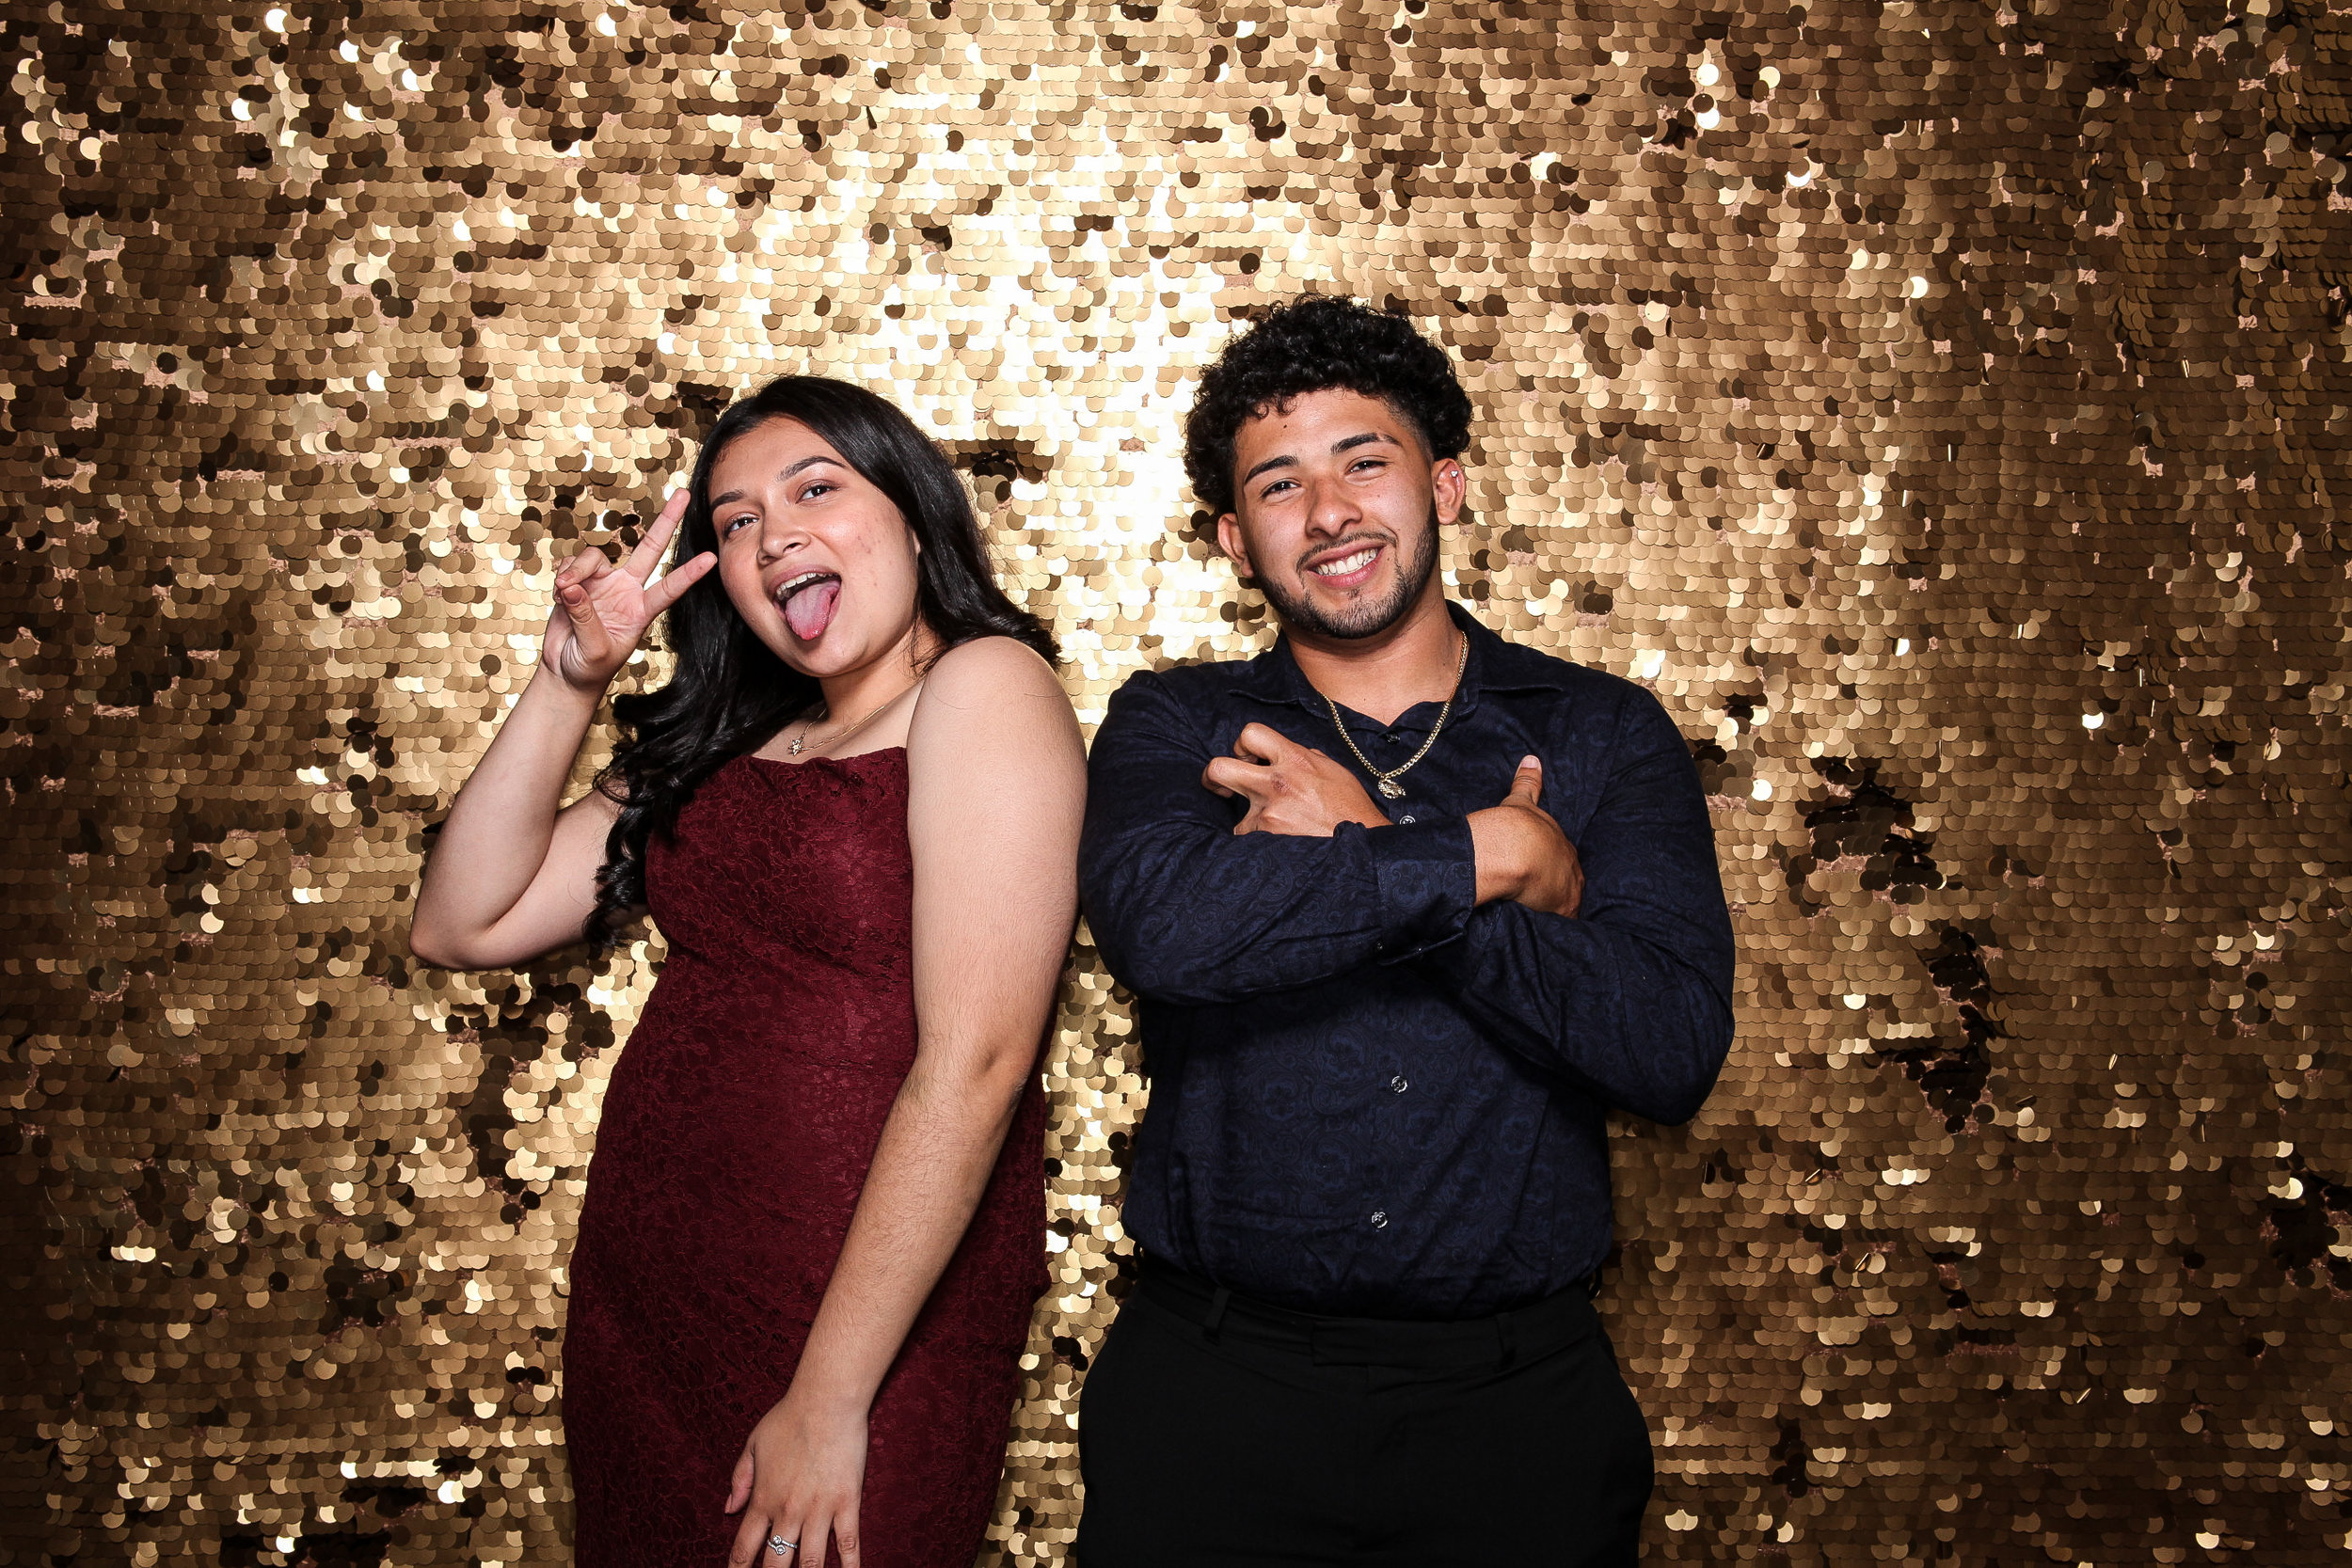 20190503_Adelphi_Senior_Formal-353.jpg